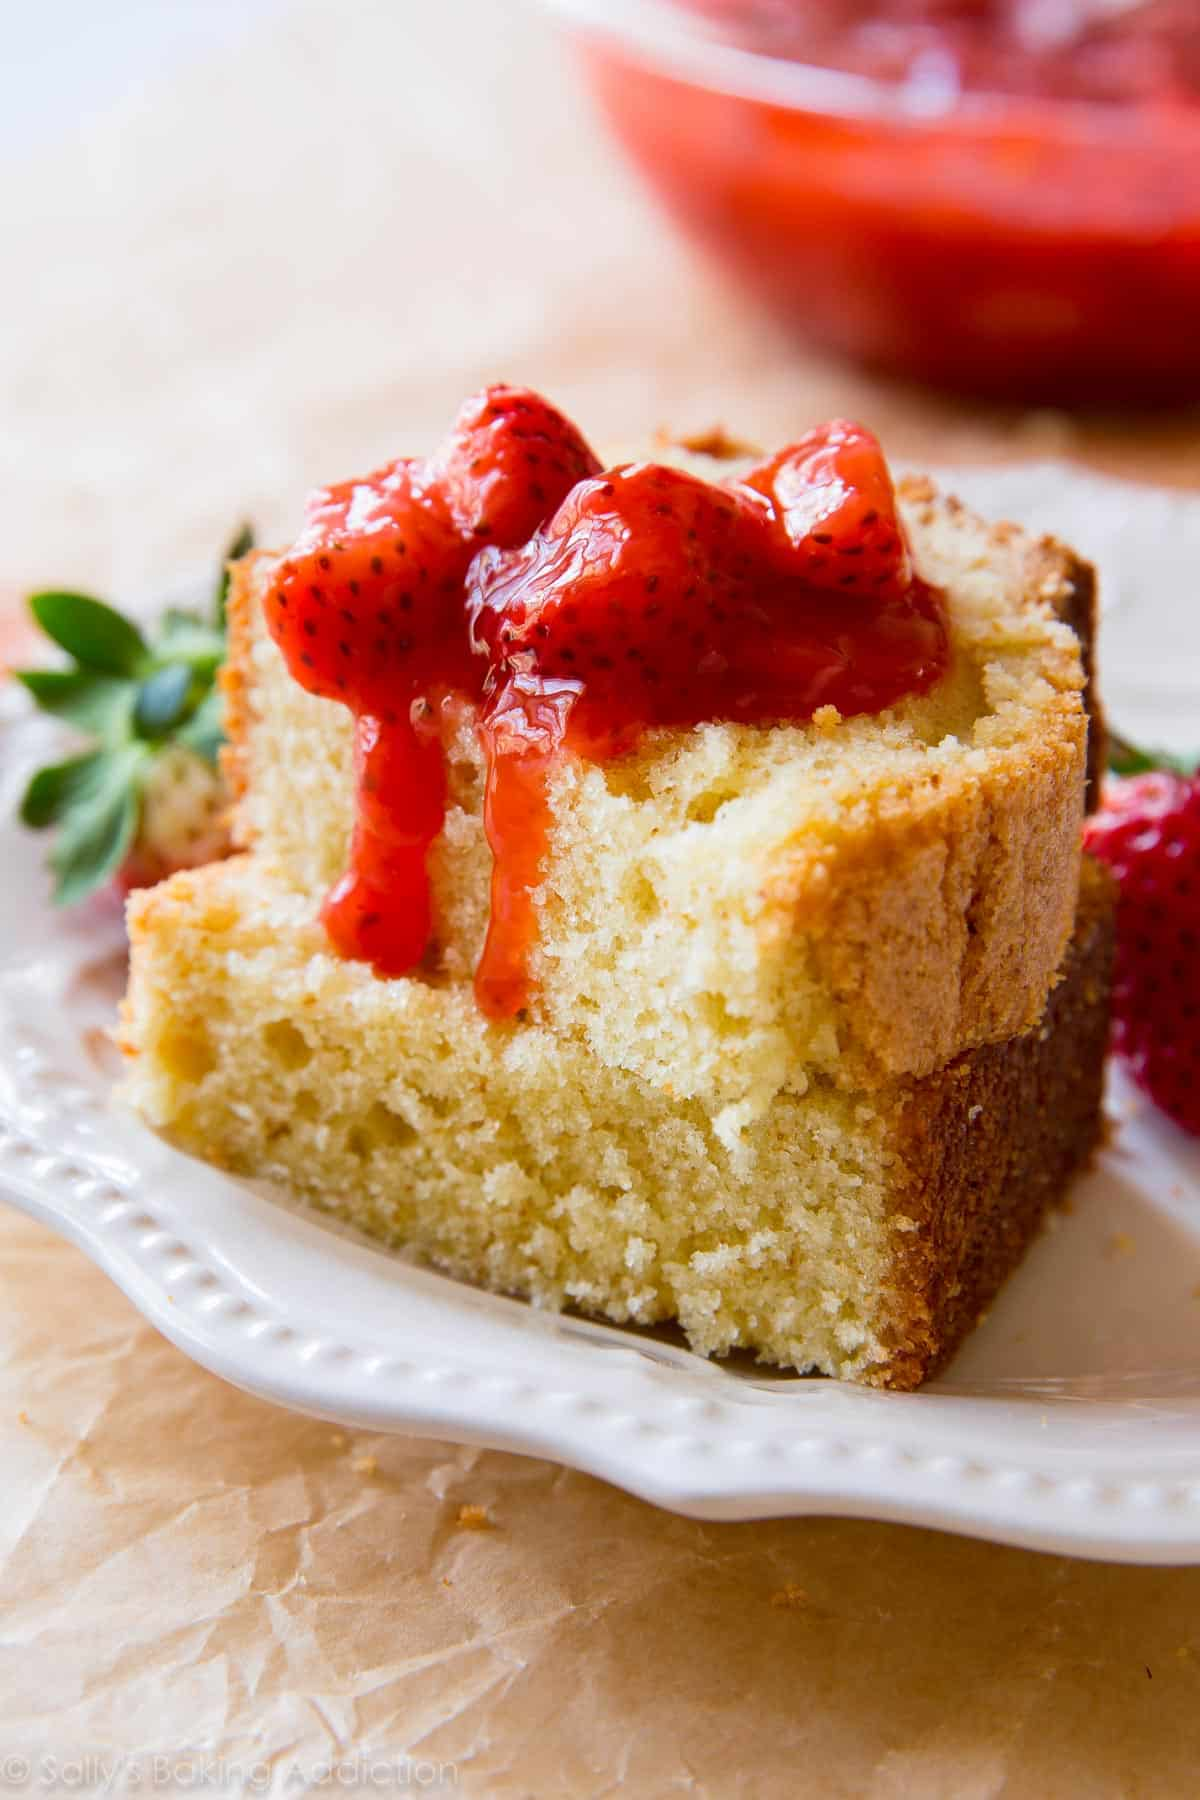 You won't BELIEVE the flavor in this simple brown butter pound cake! Top with strawberry compote. Recipe on sallysbakingaddiction.com